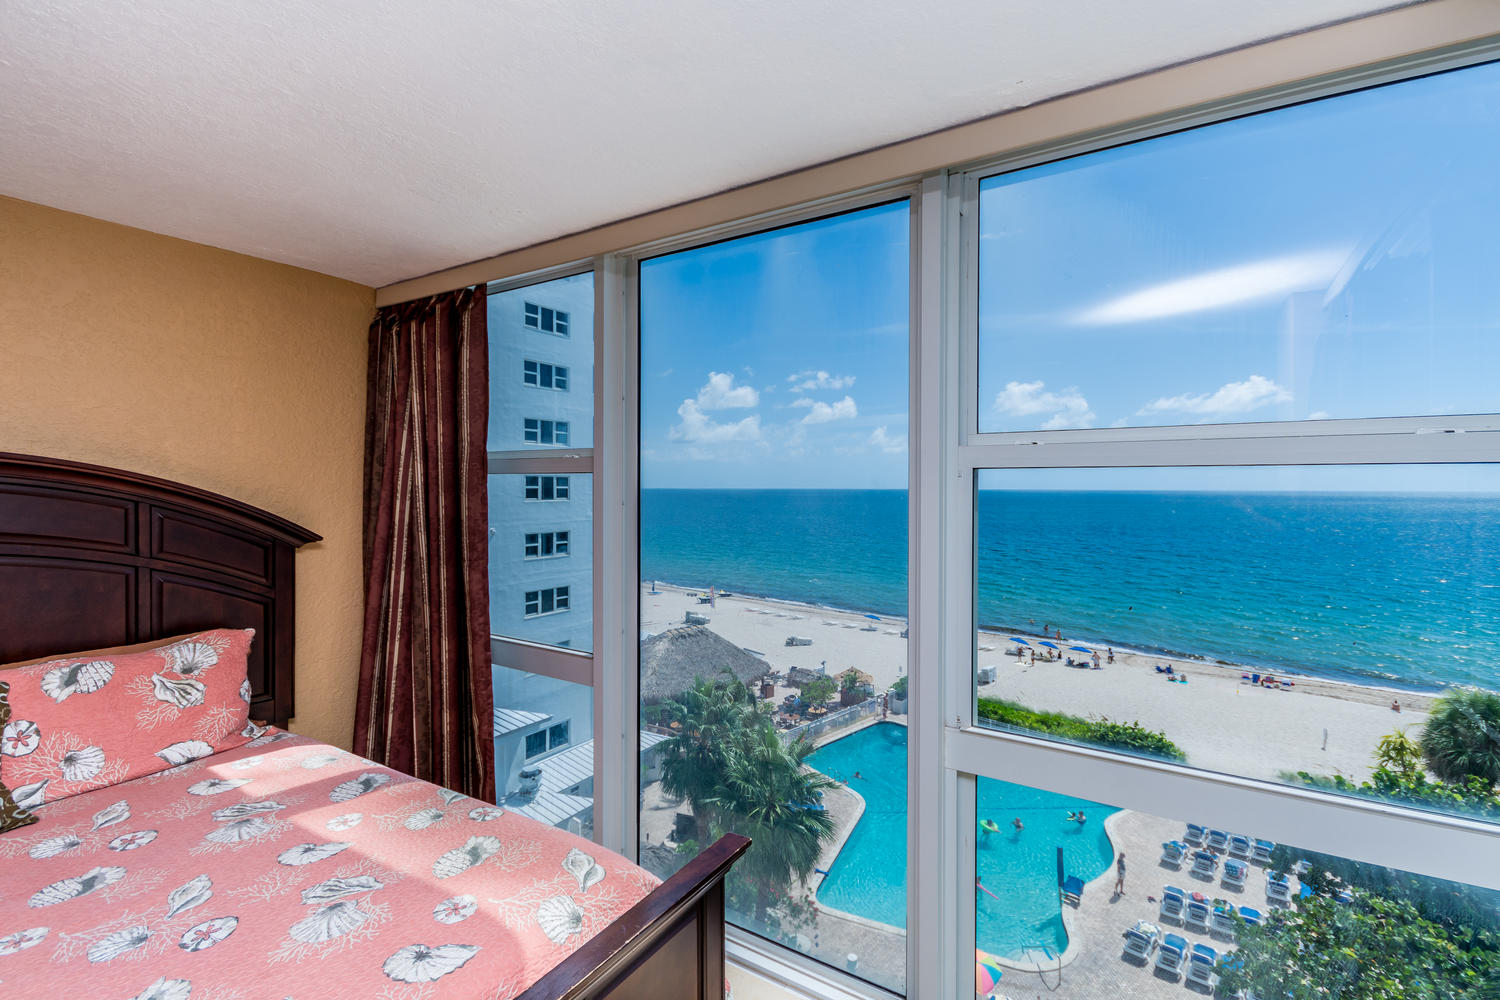 4040 Galt Ocean Dr Unit 500-large-037-85